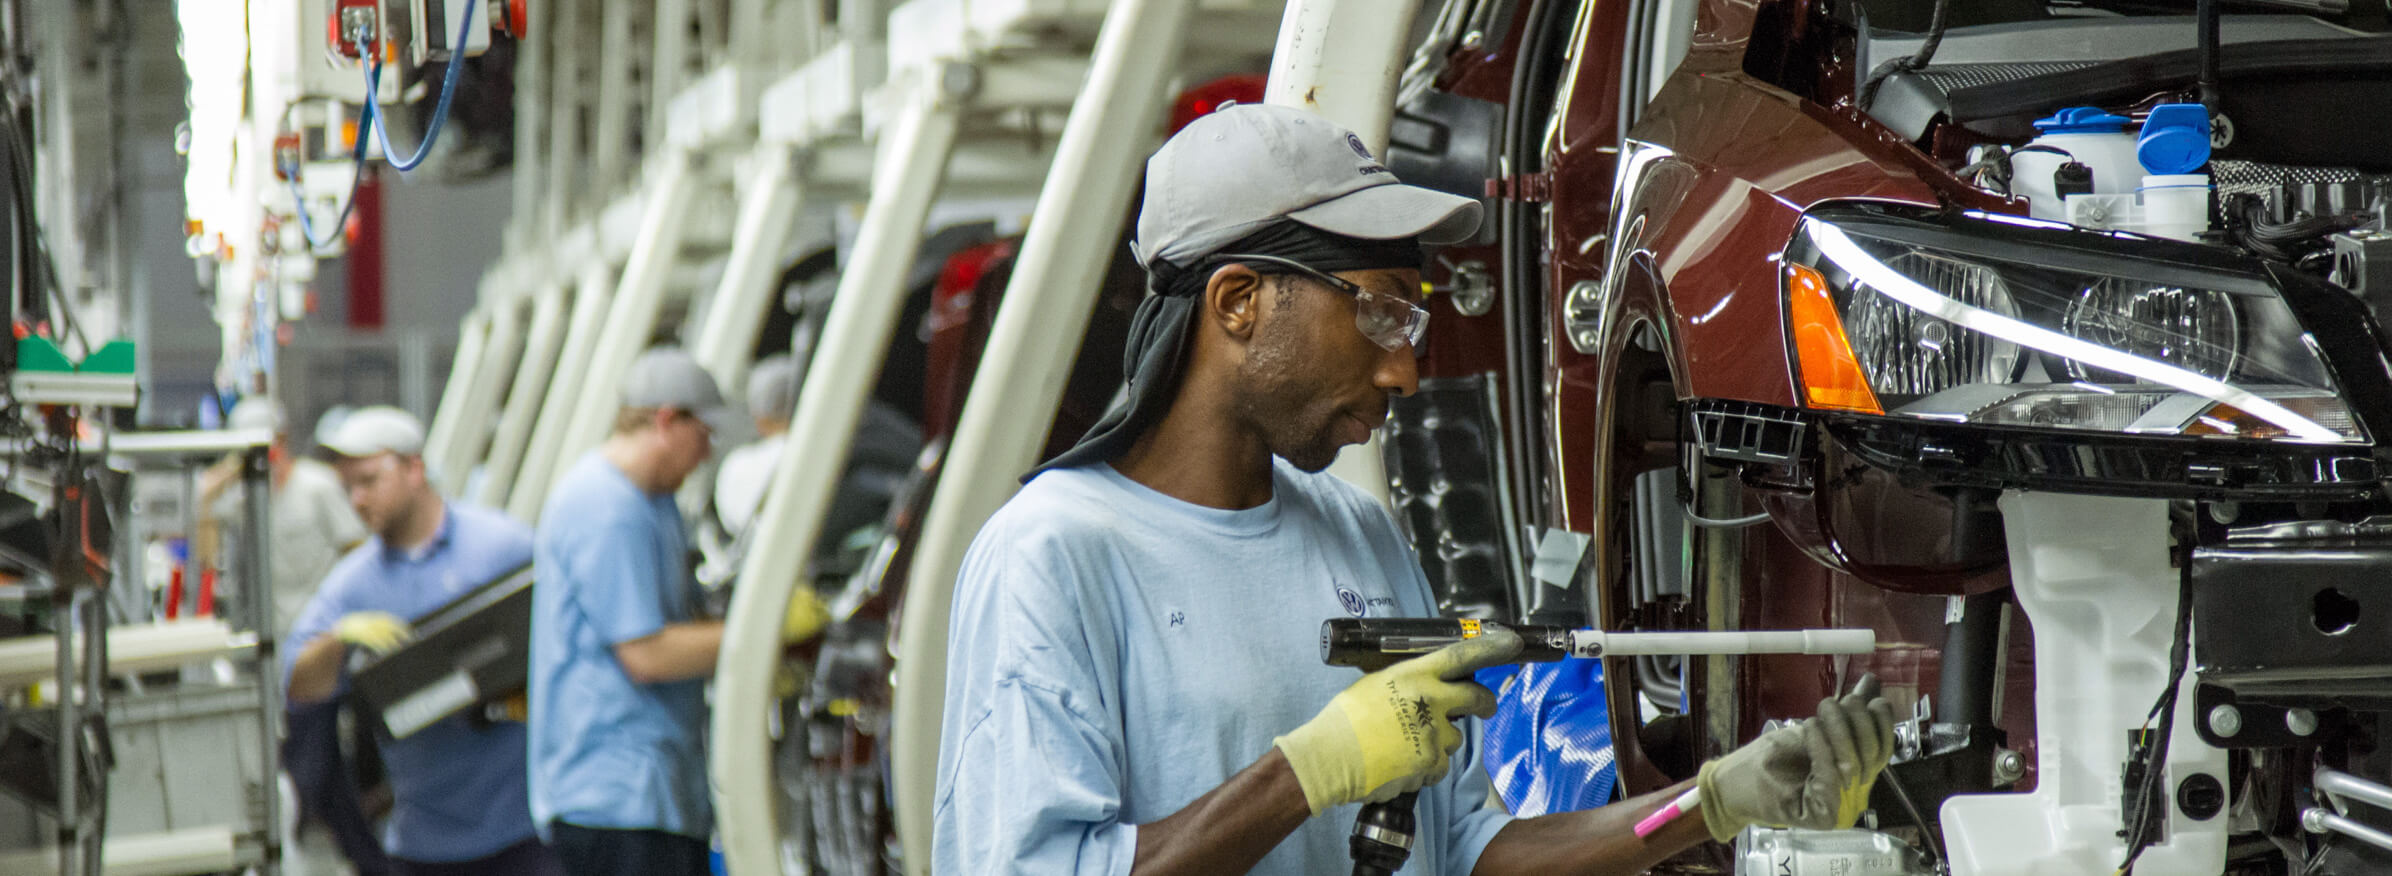 FILE - In this June 12, 2013, file photo, workers assemble Volkswagen Passat sedans at the German automaker's plant in Chattanooga, Tenn. AP Photo/ Erik Schelzig, file)